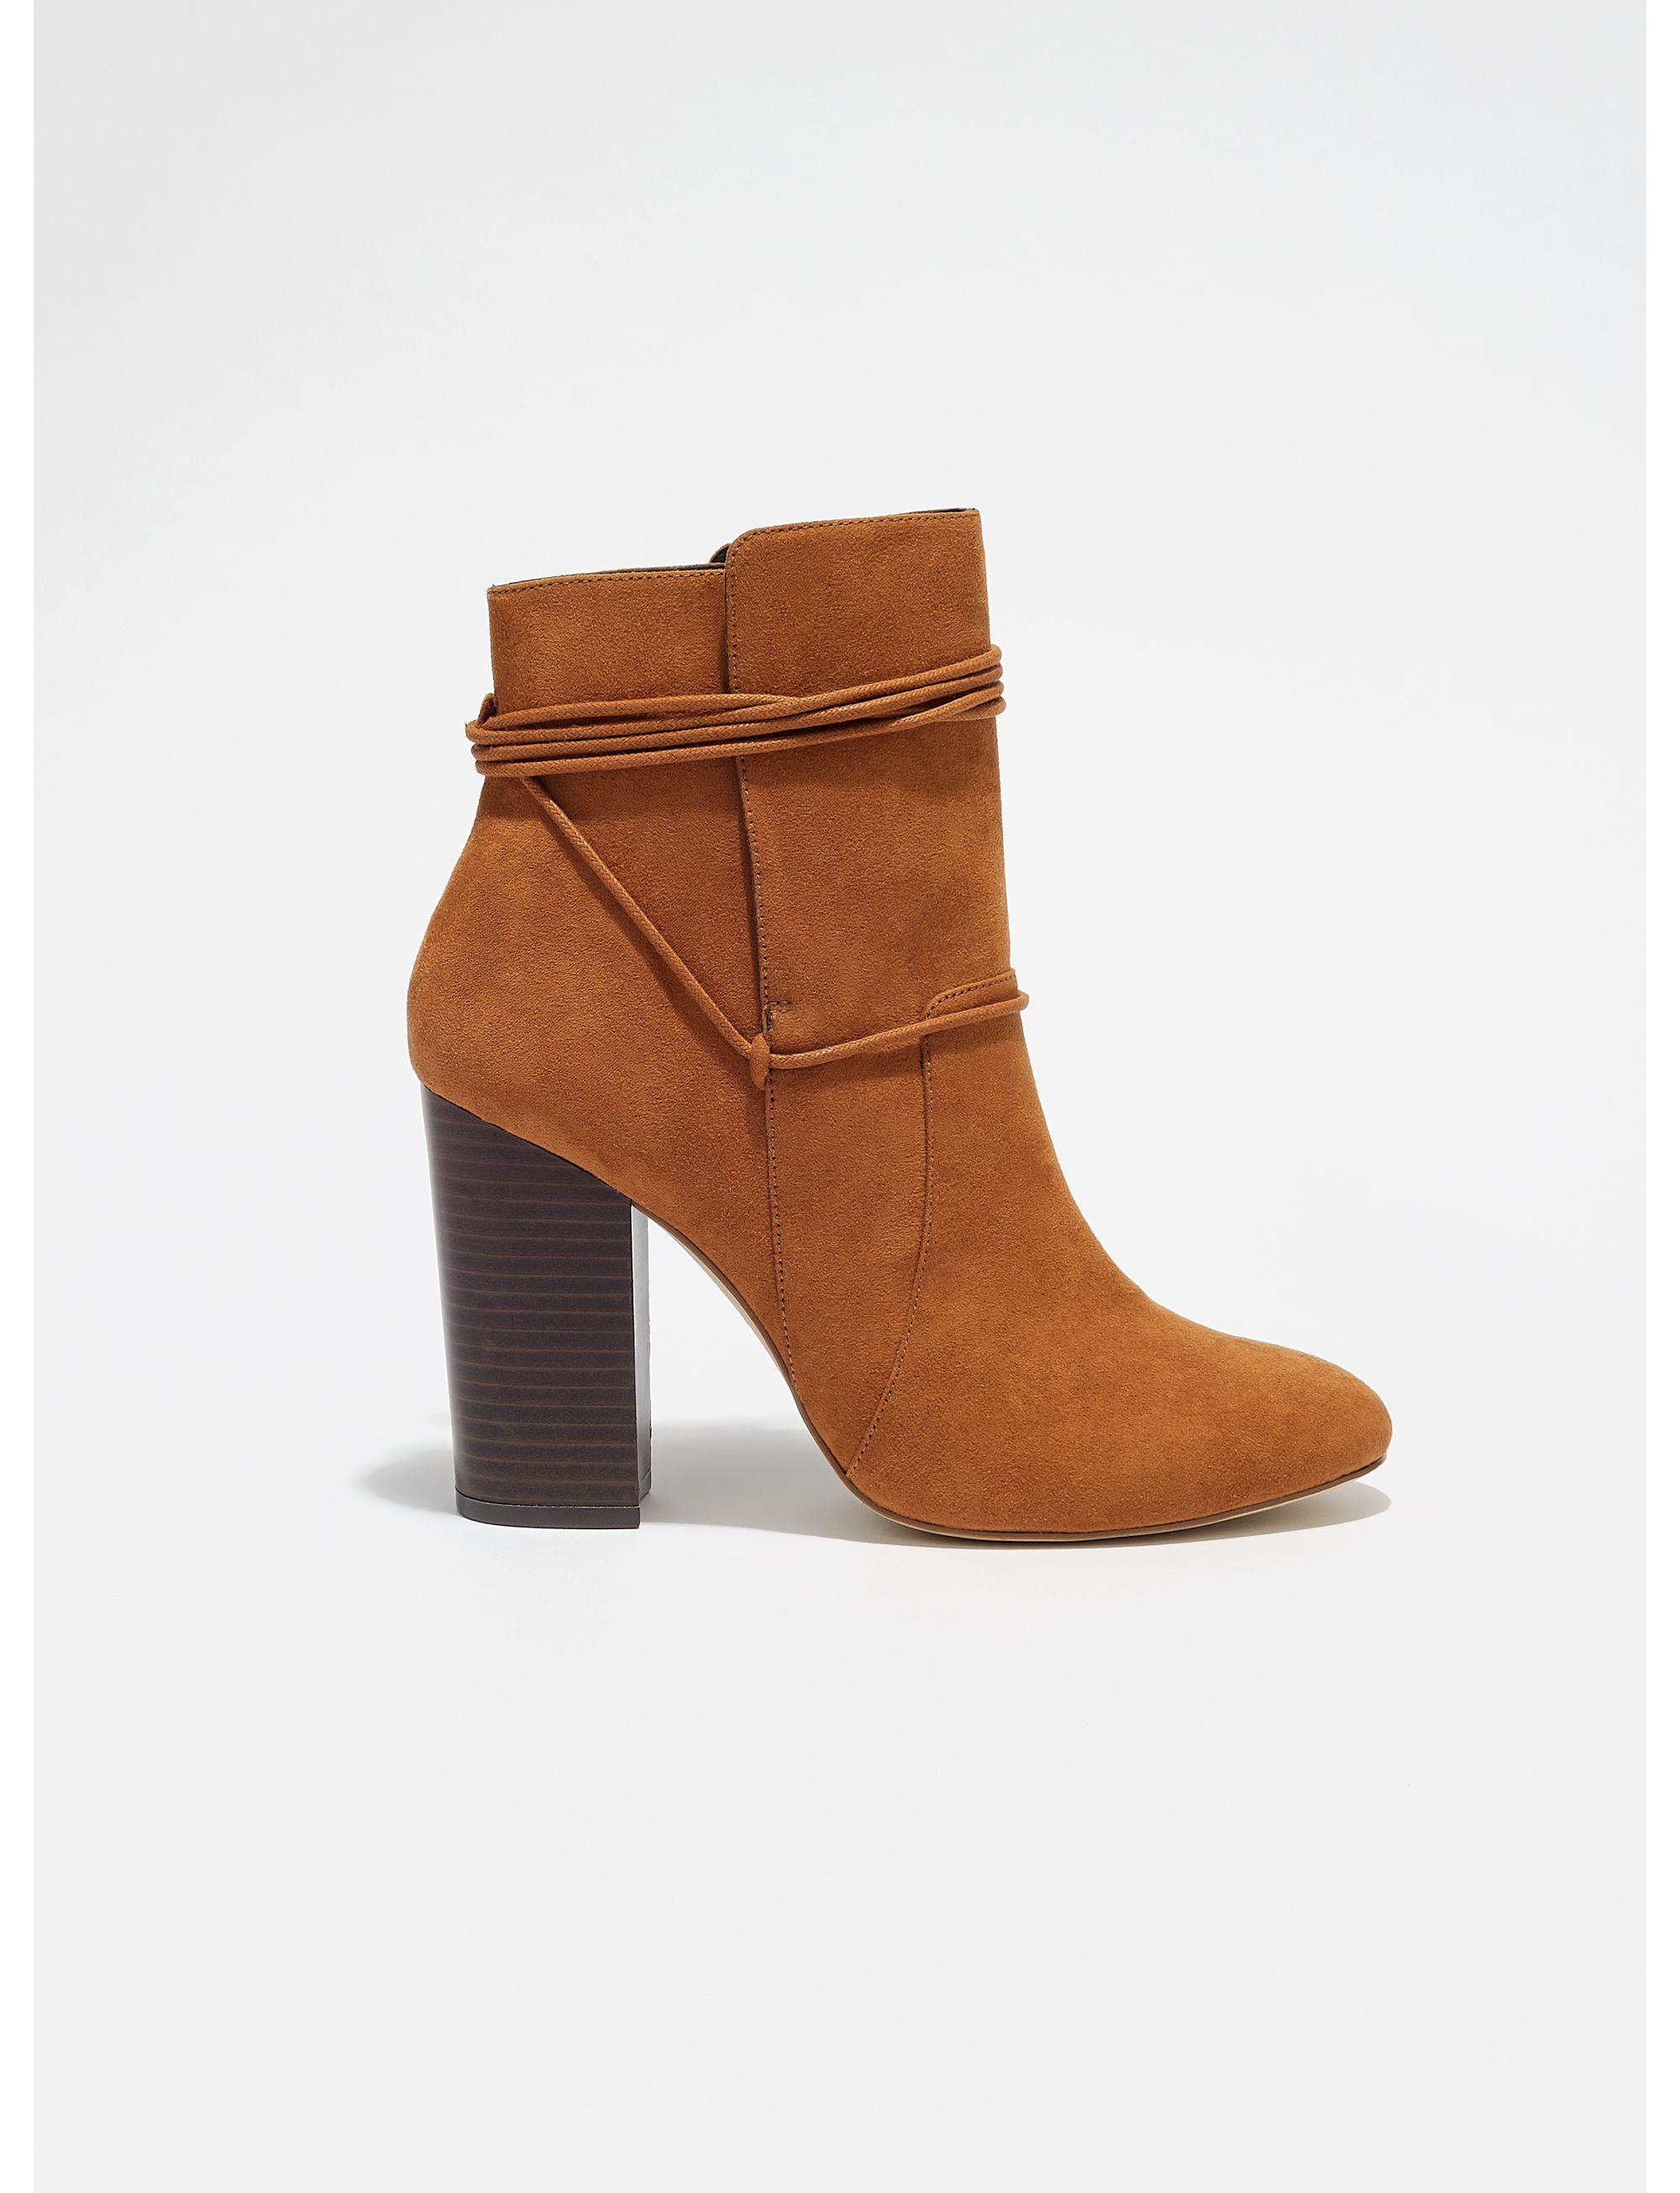 Miss Selfridge Synthetic Tan Arial Wrap Ankle Boots in Brown